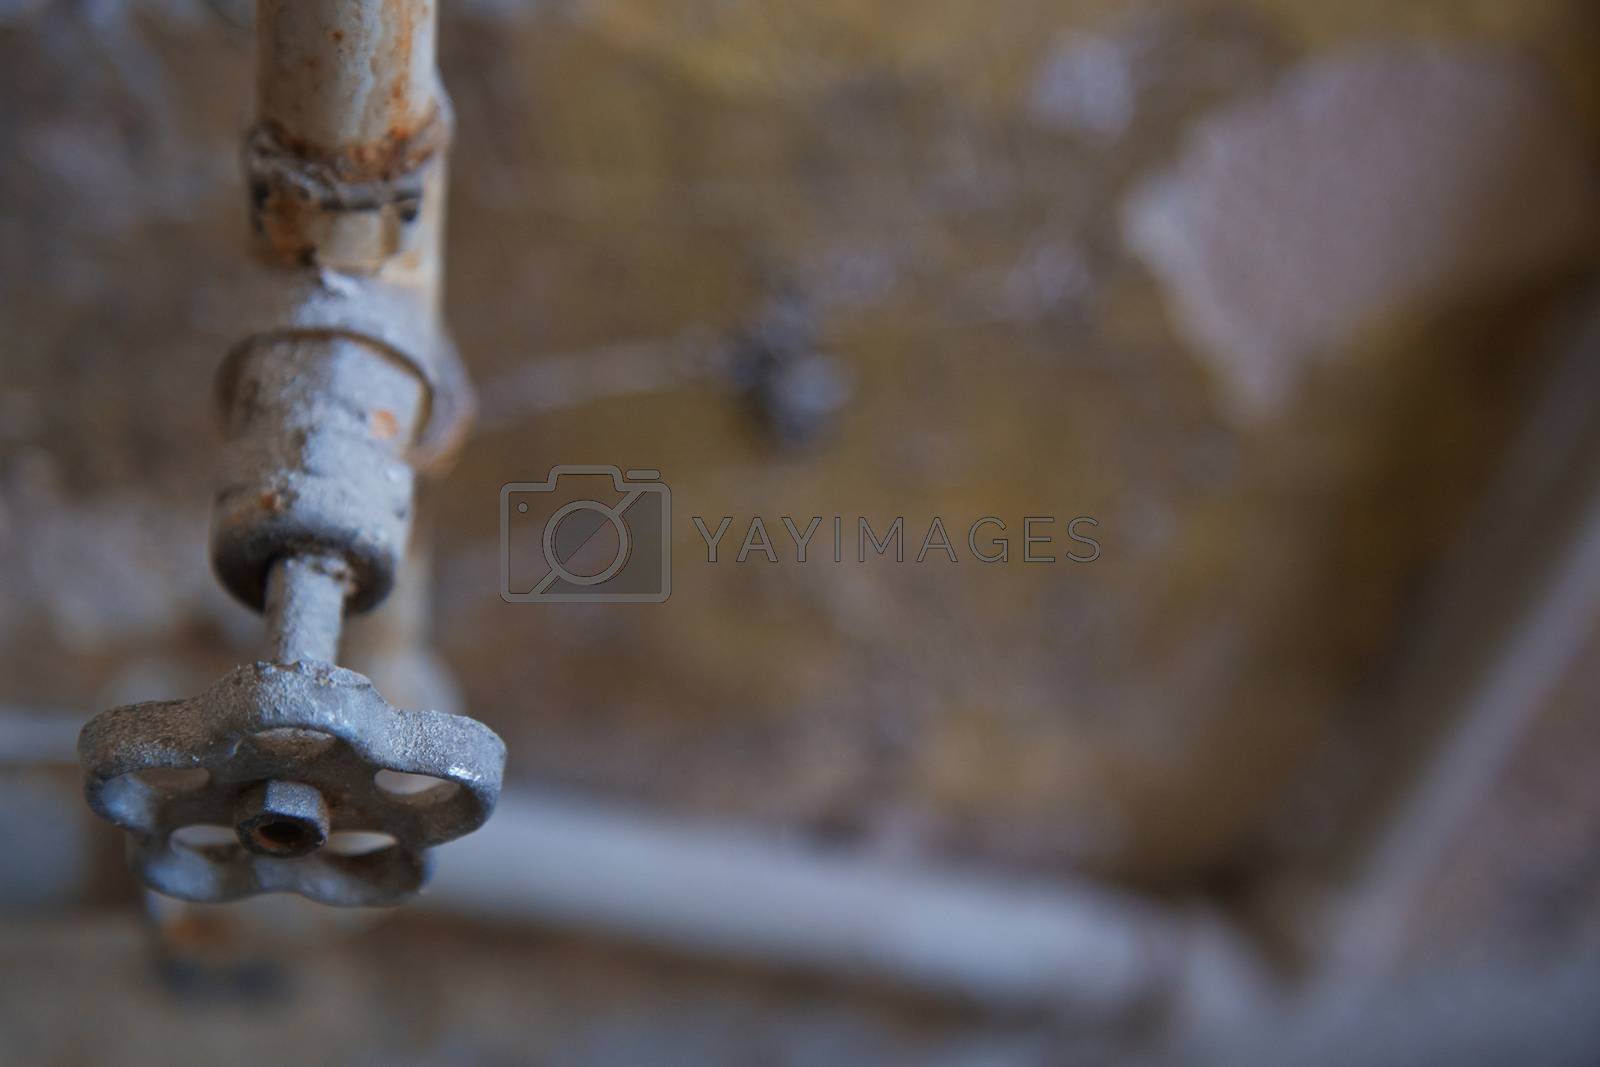 Royalty free image of Old rusty tap by Novic